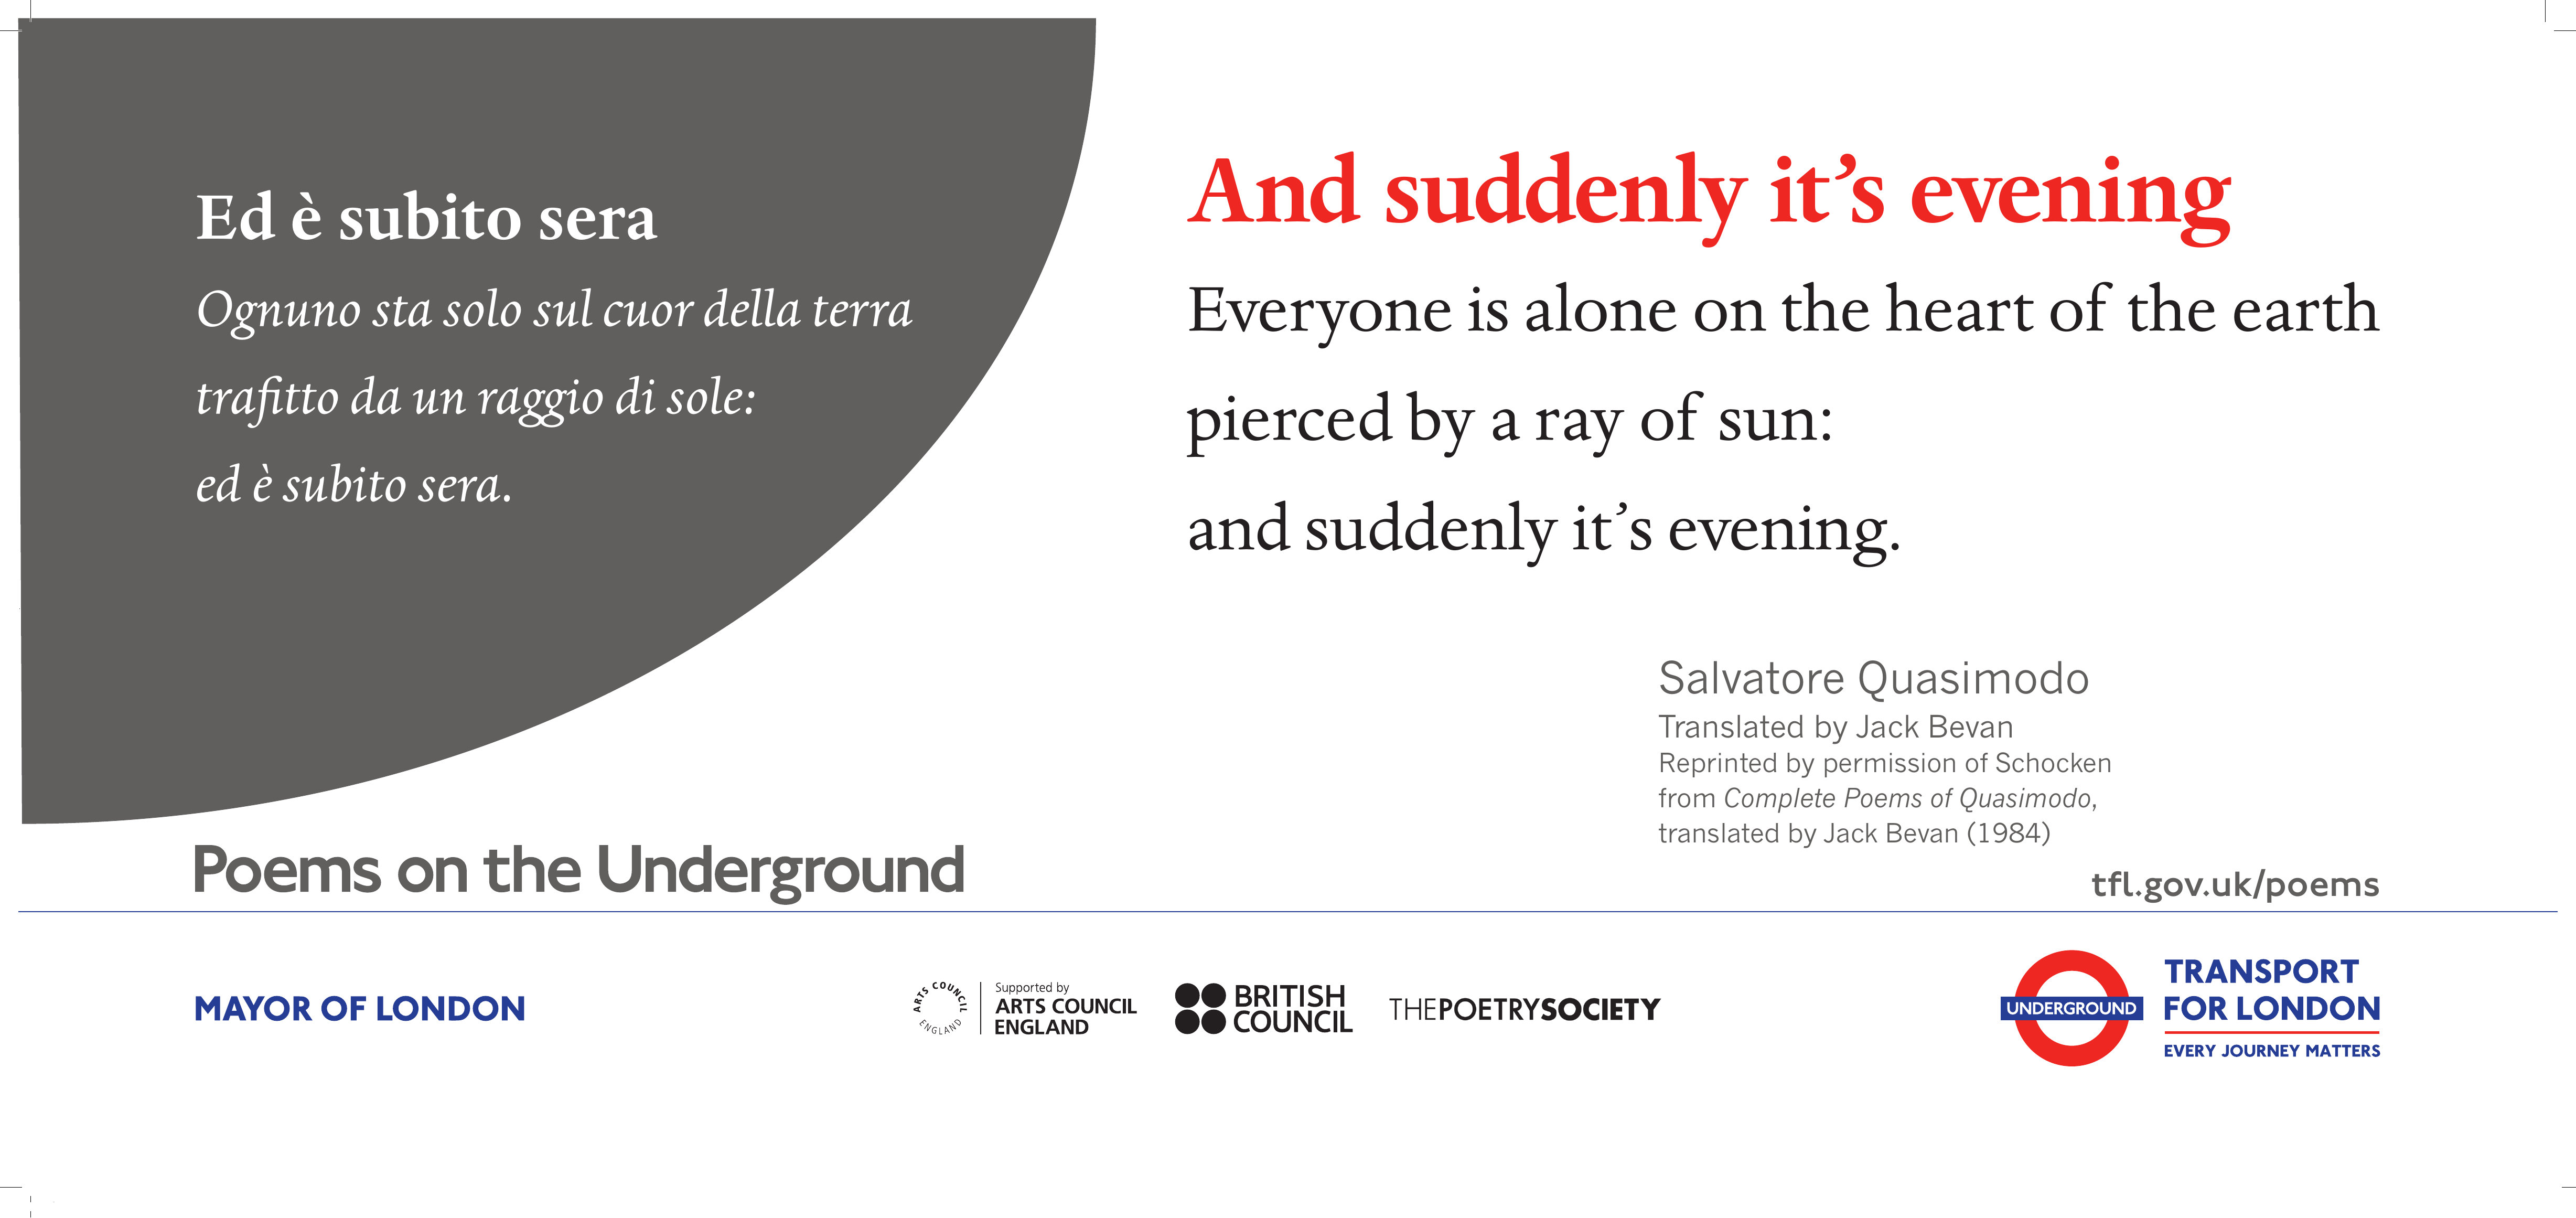 And suddenly it's evening - Poems on the Underground